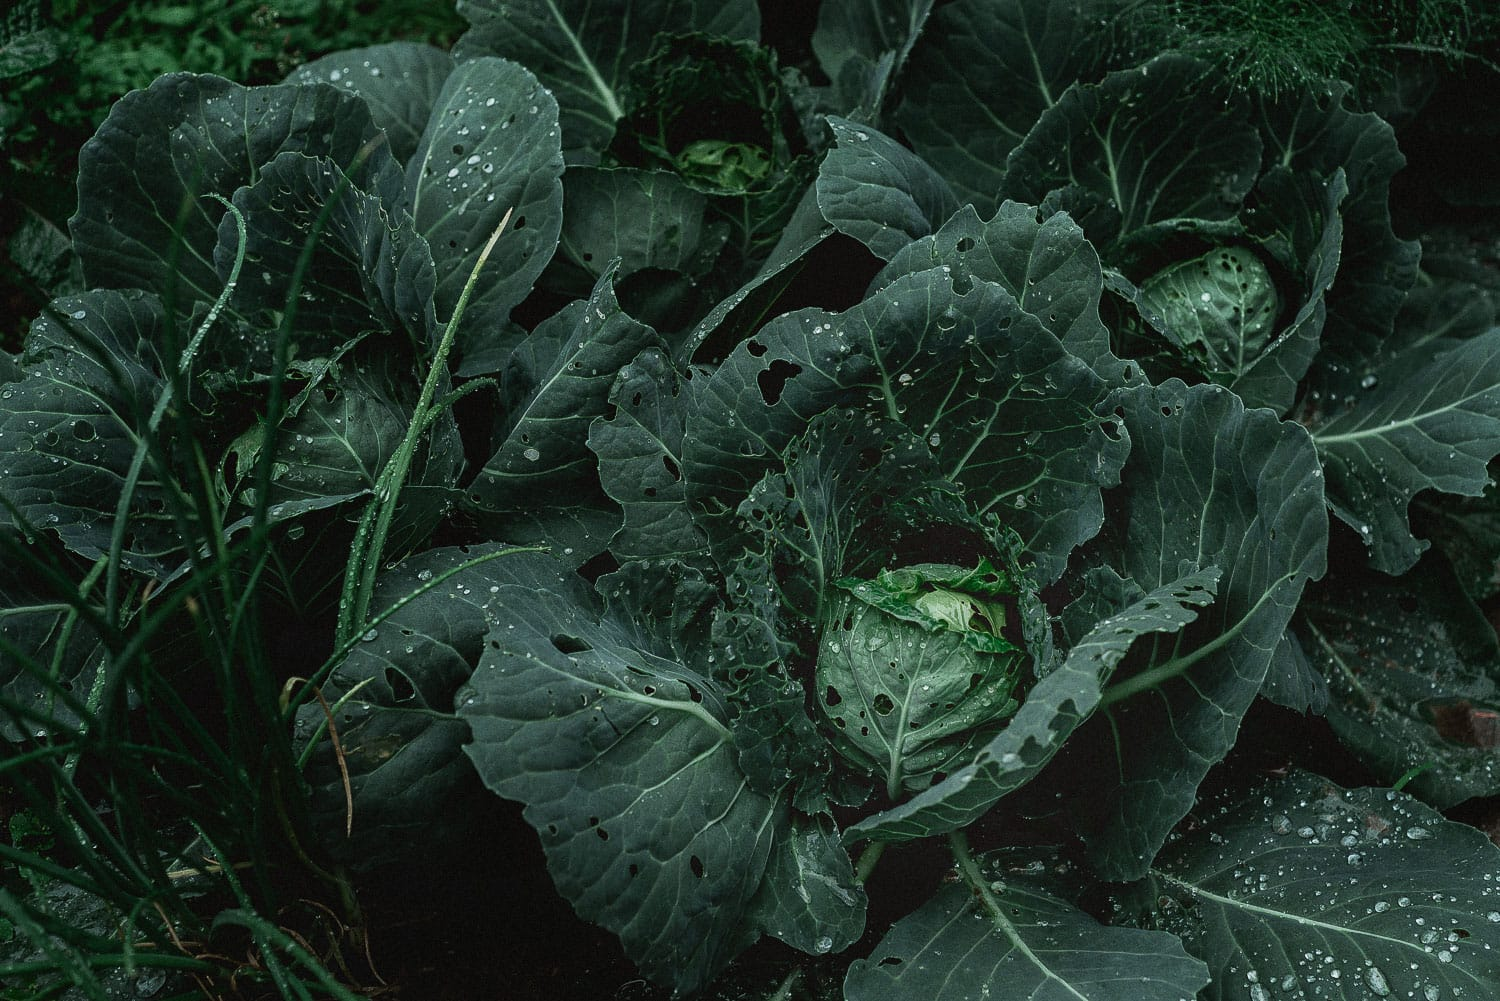 Cabbage in a garden